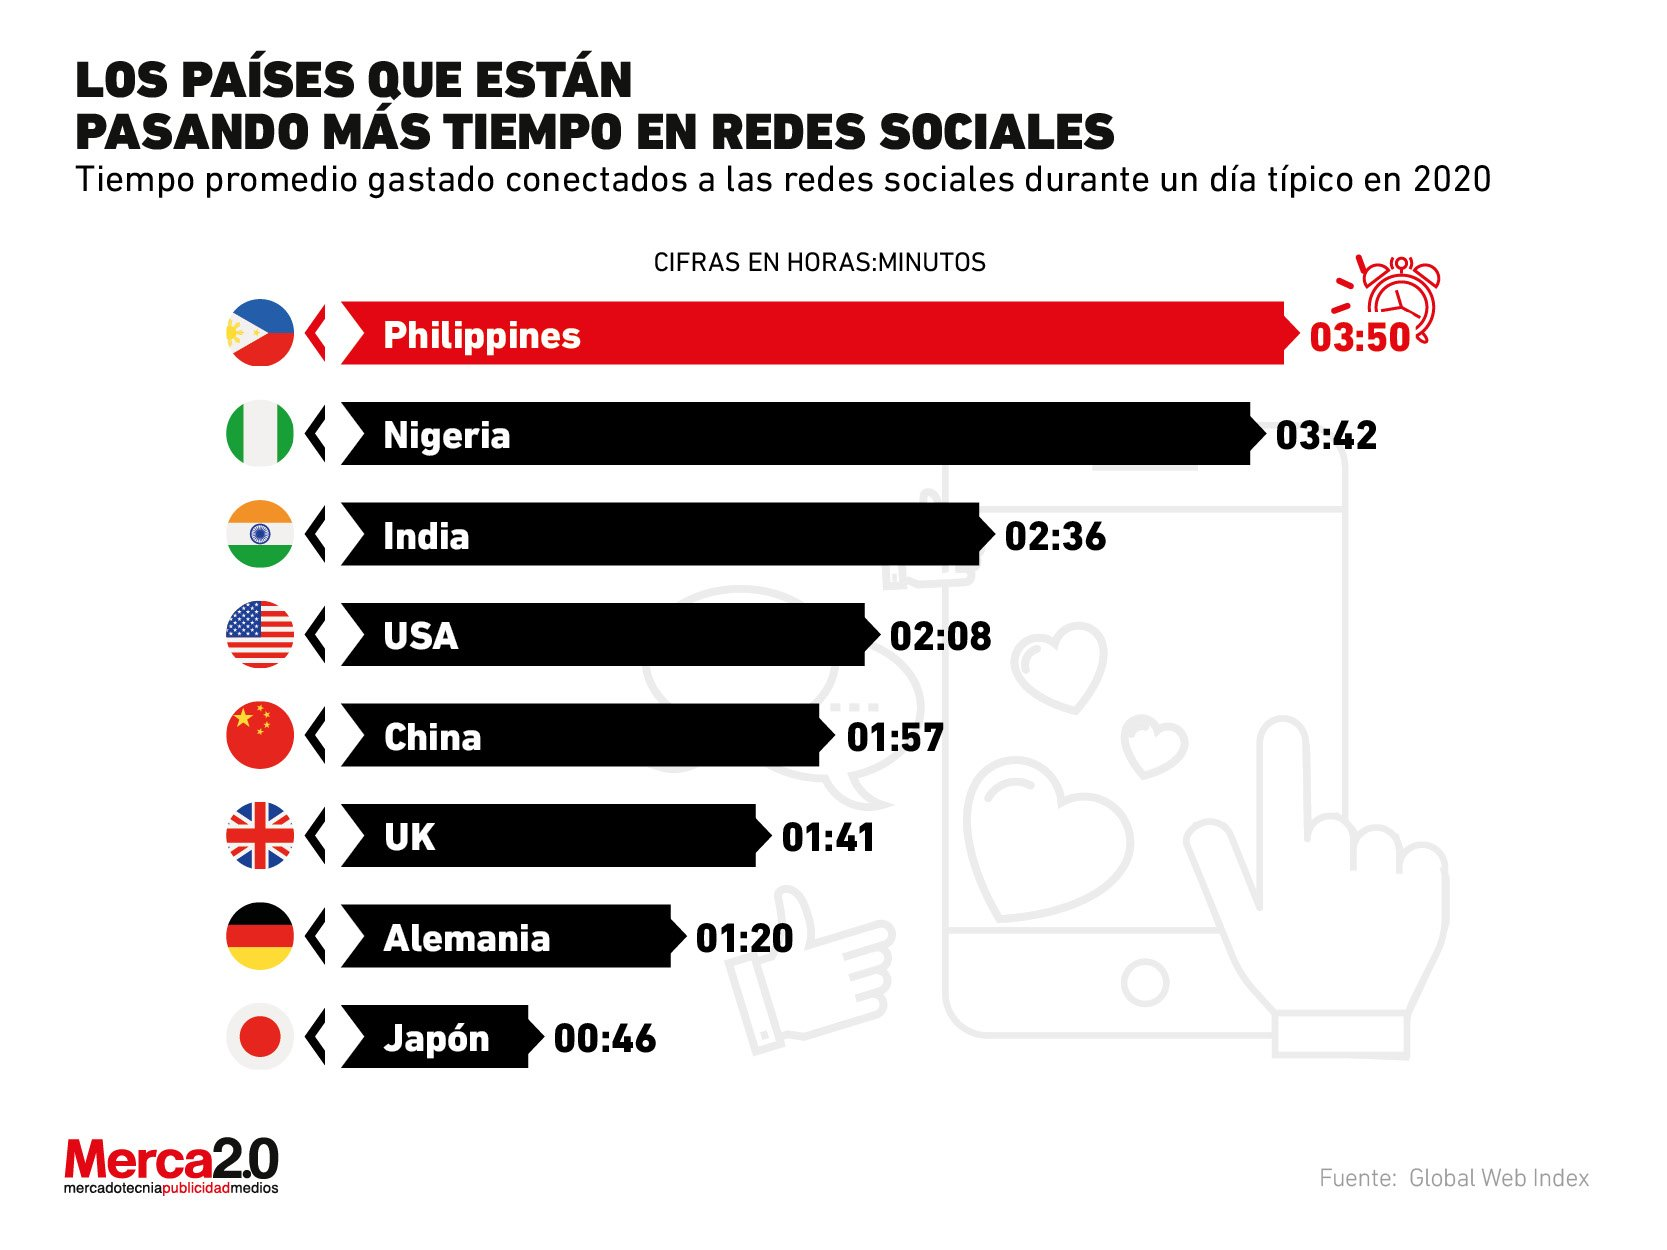 These are the countries that are spending the most time on social networks in 2020